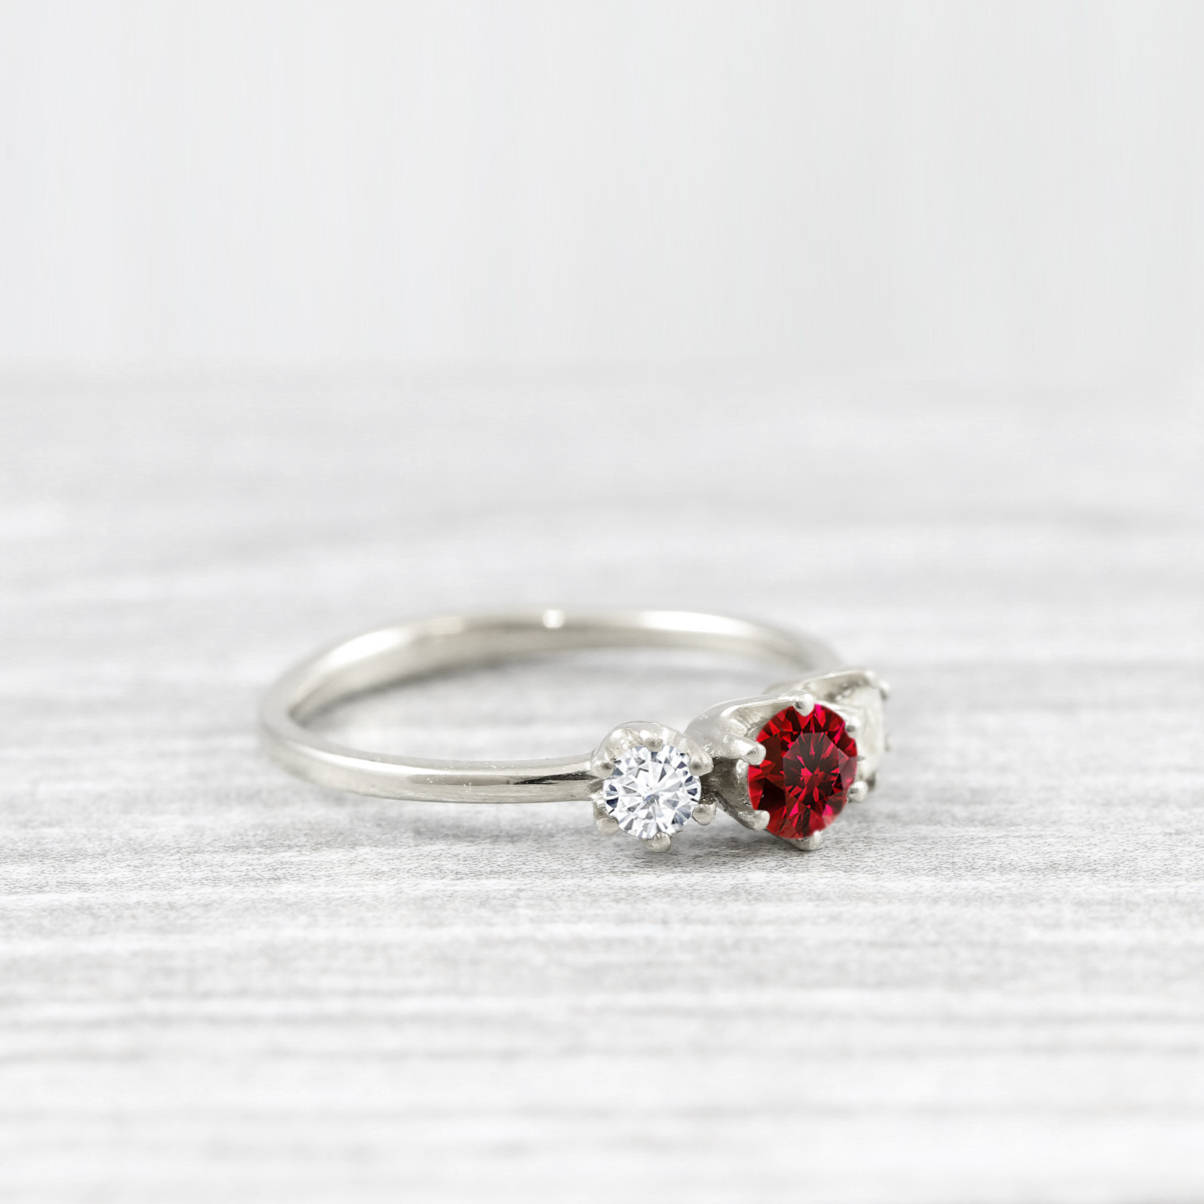 Ruby And Diamond Moissanite Trilogy 3 Stone Engagement Ring Handmade In Gold Or Platinum Aardvark Jewellery